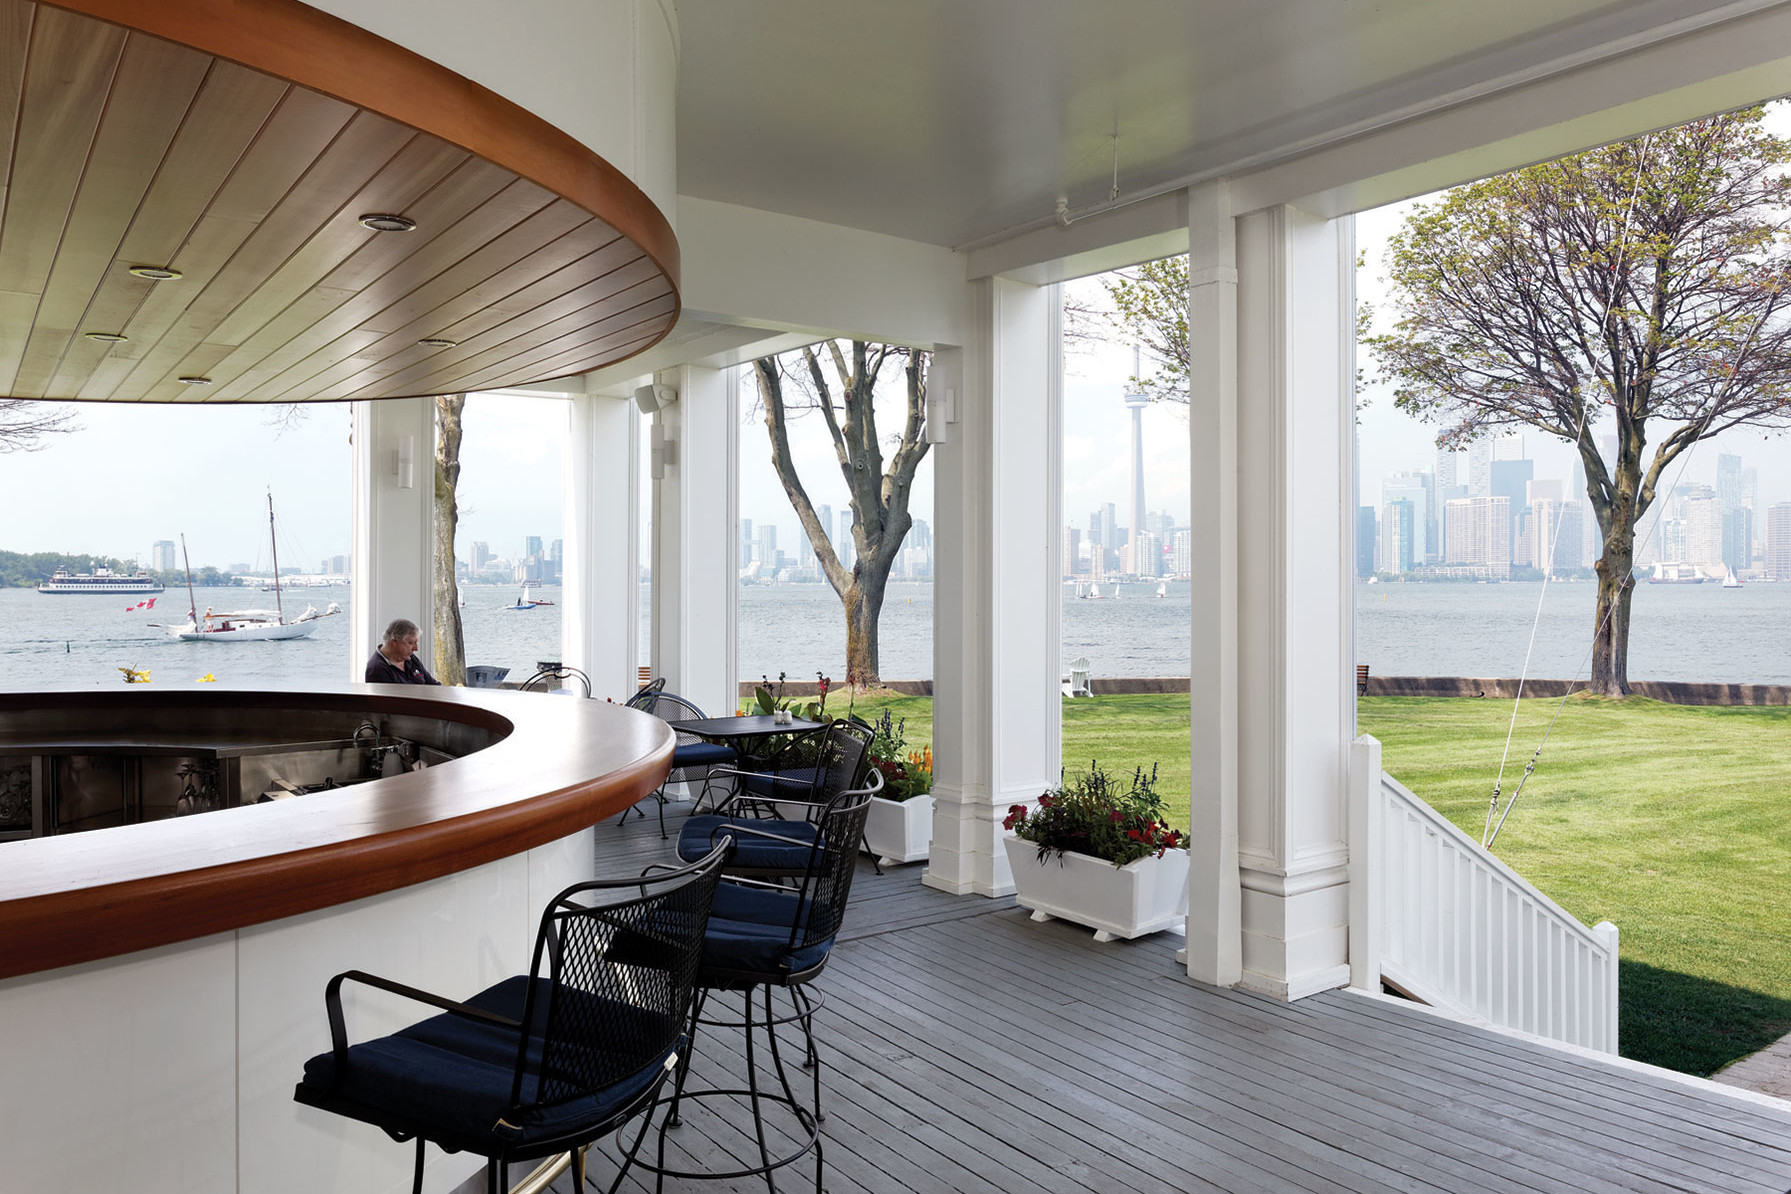 Covered patio with round white and wood trimmed bar overlooking green lawn with trees, lake with sailboats and city scape